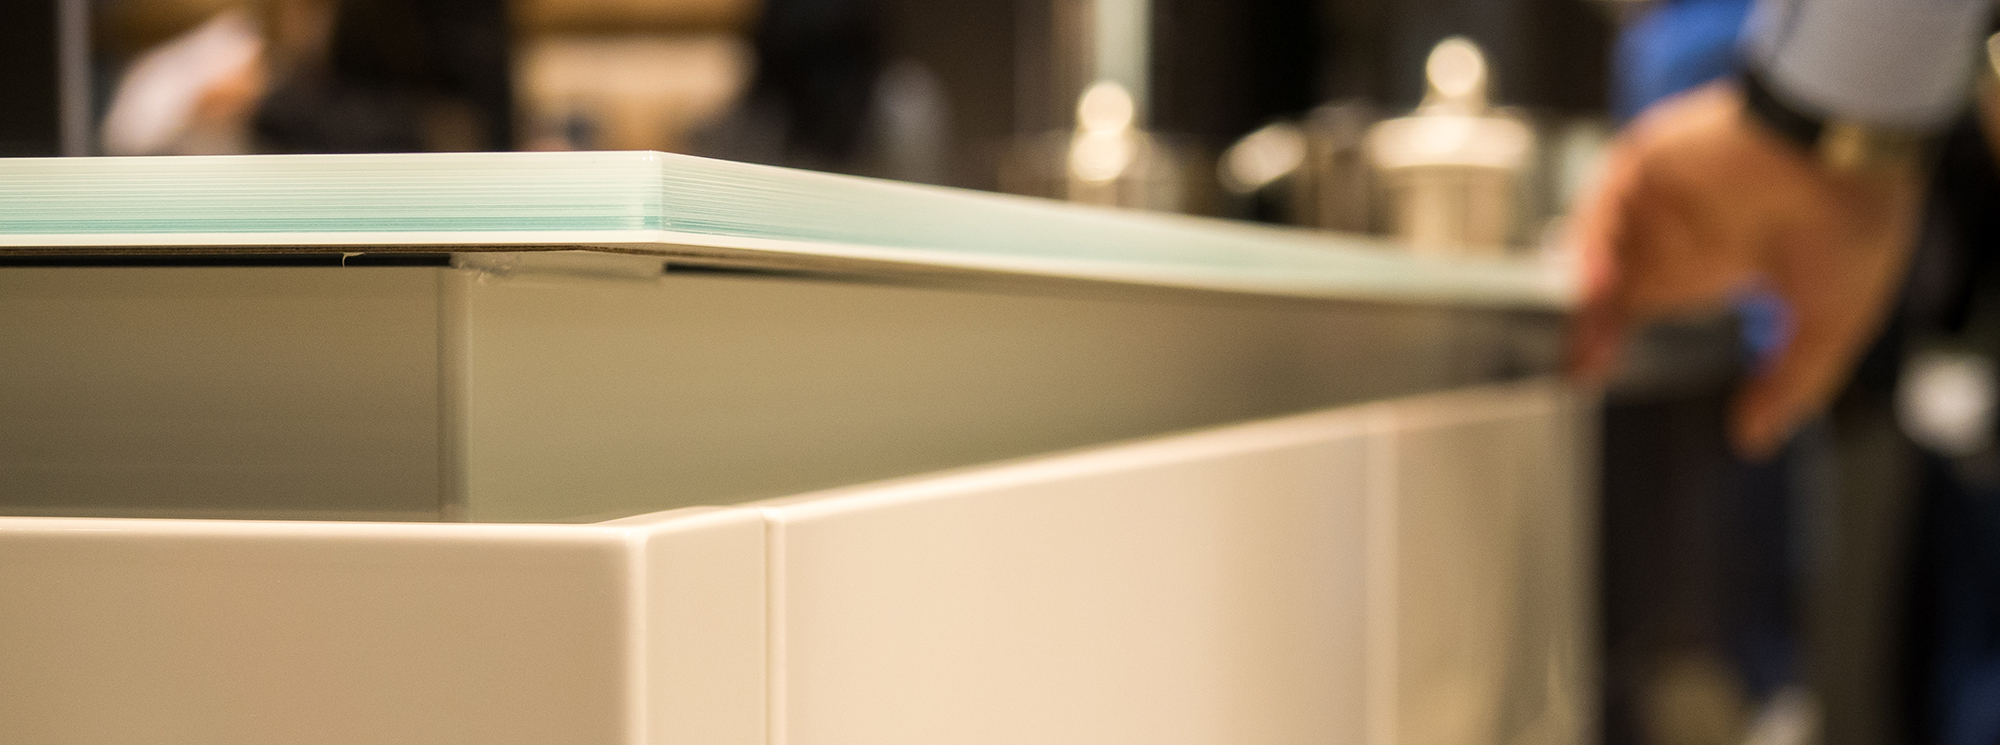 Countertop Dishwasher Attachment : ... Best Alternatives to Granite Countertops - Reviewed.com Dishwashers